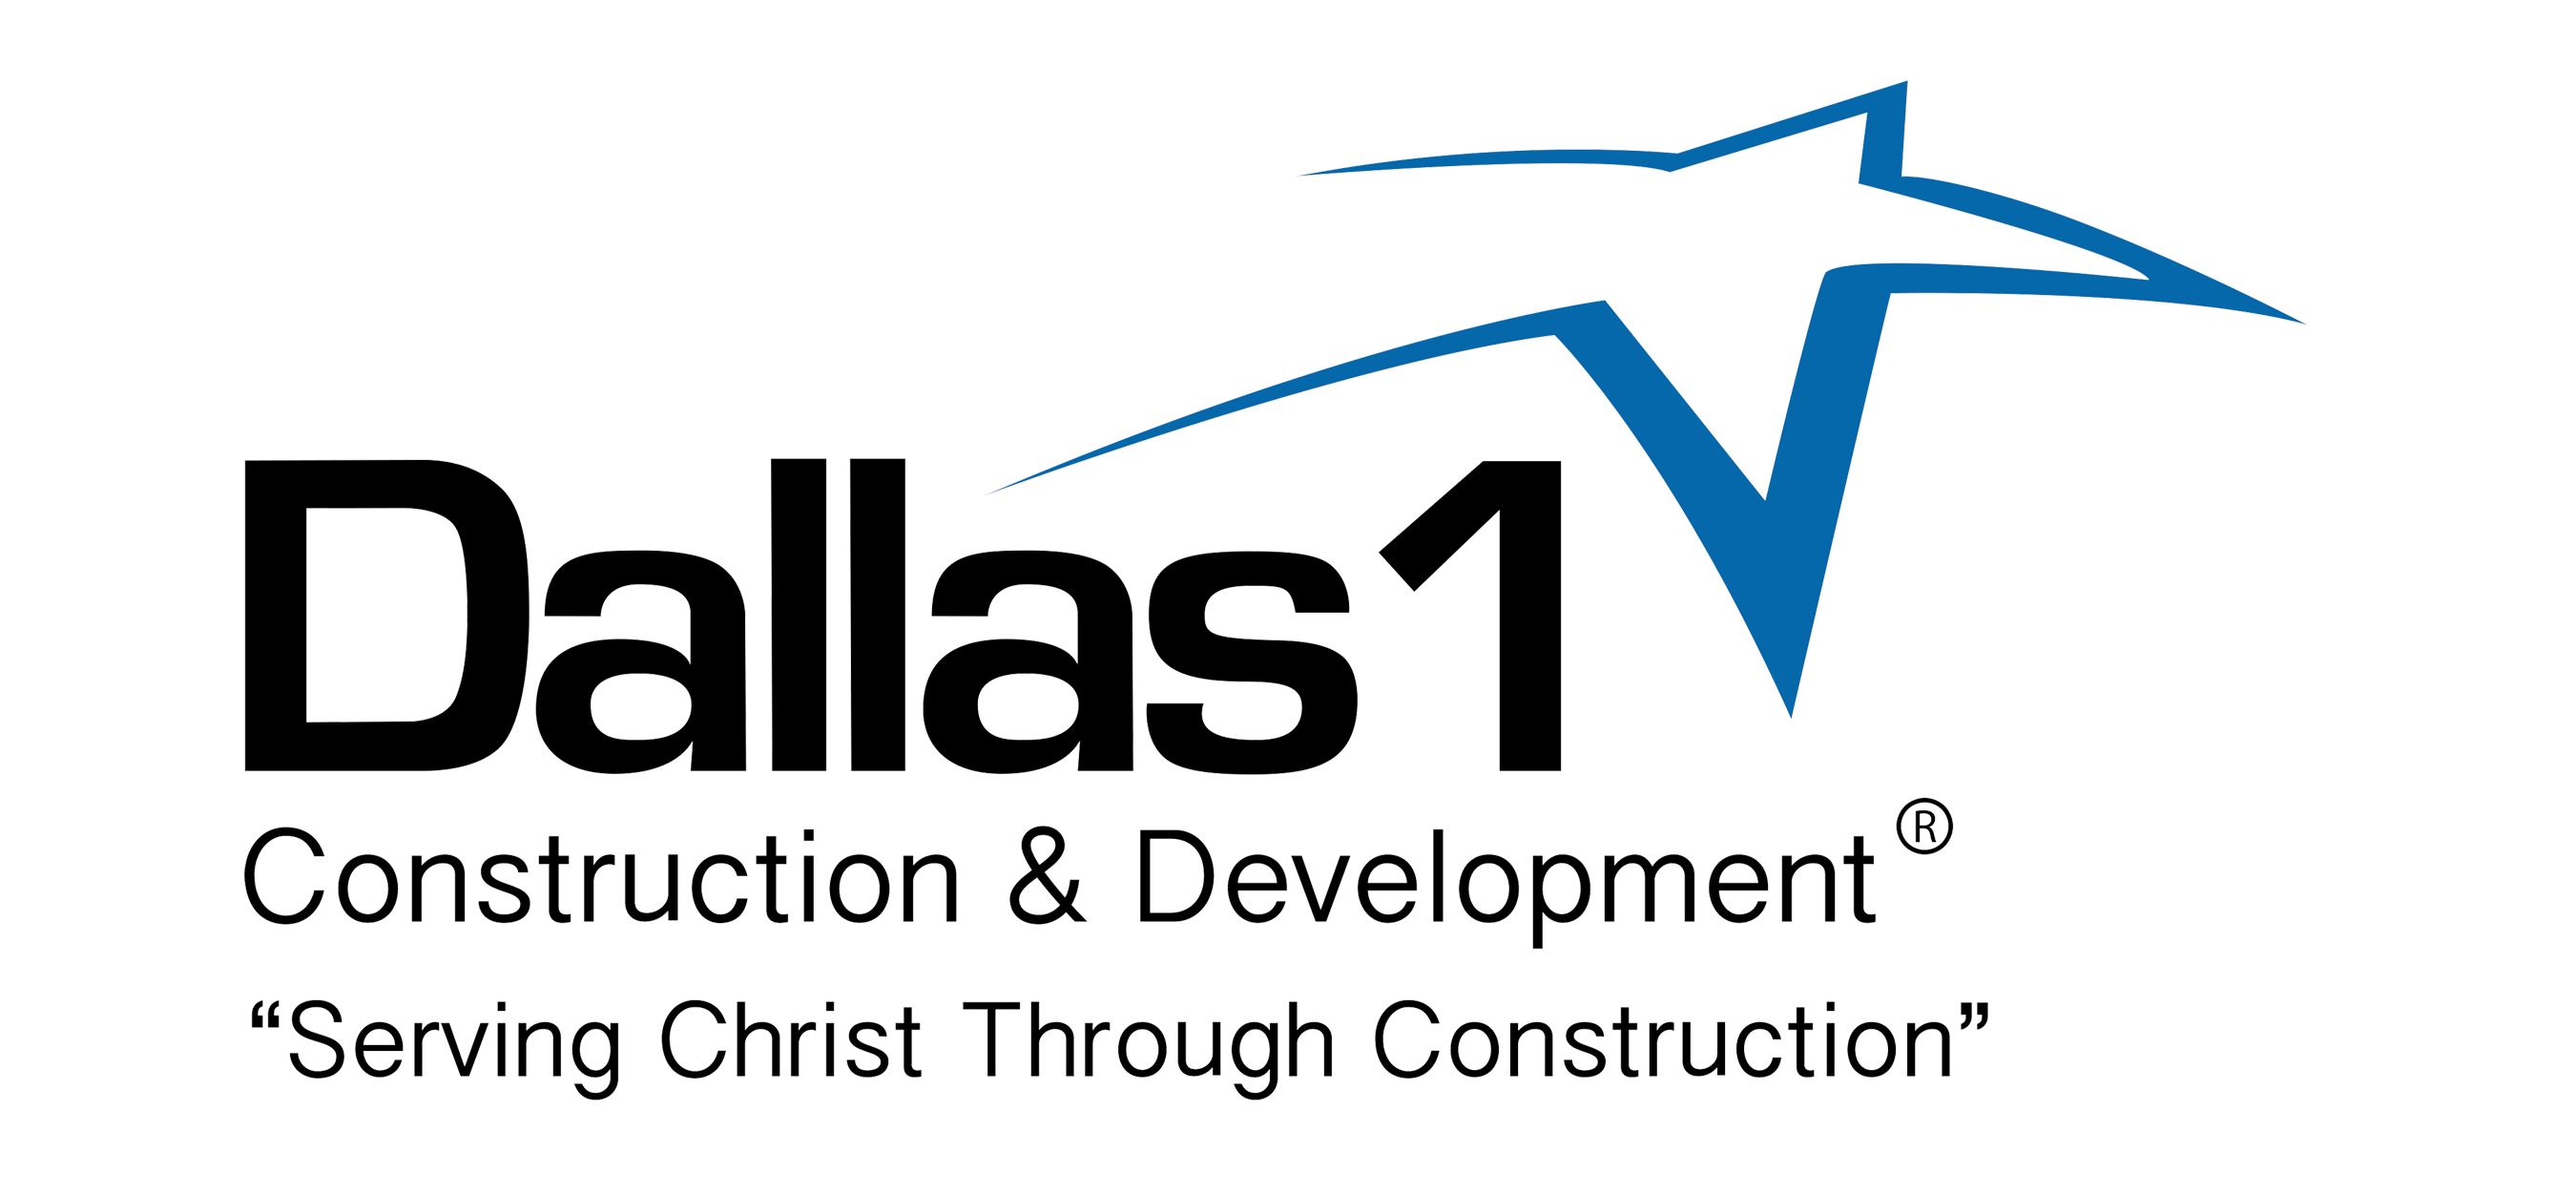 Dallas 1 Construction and Development